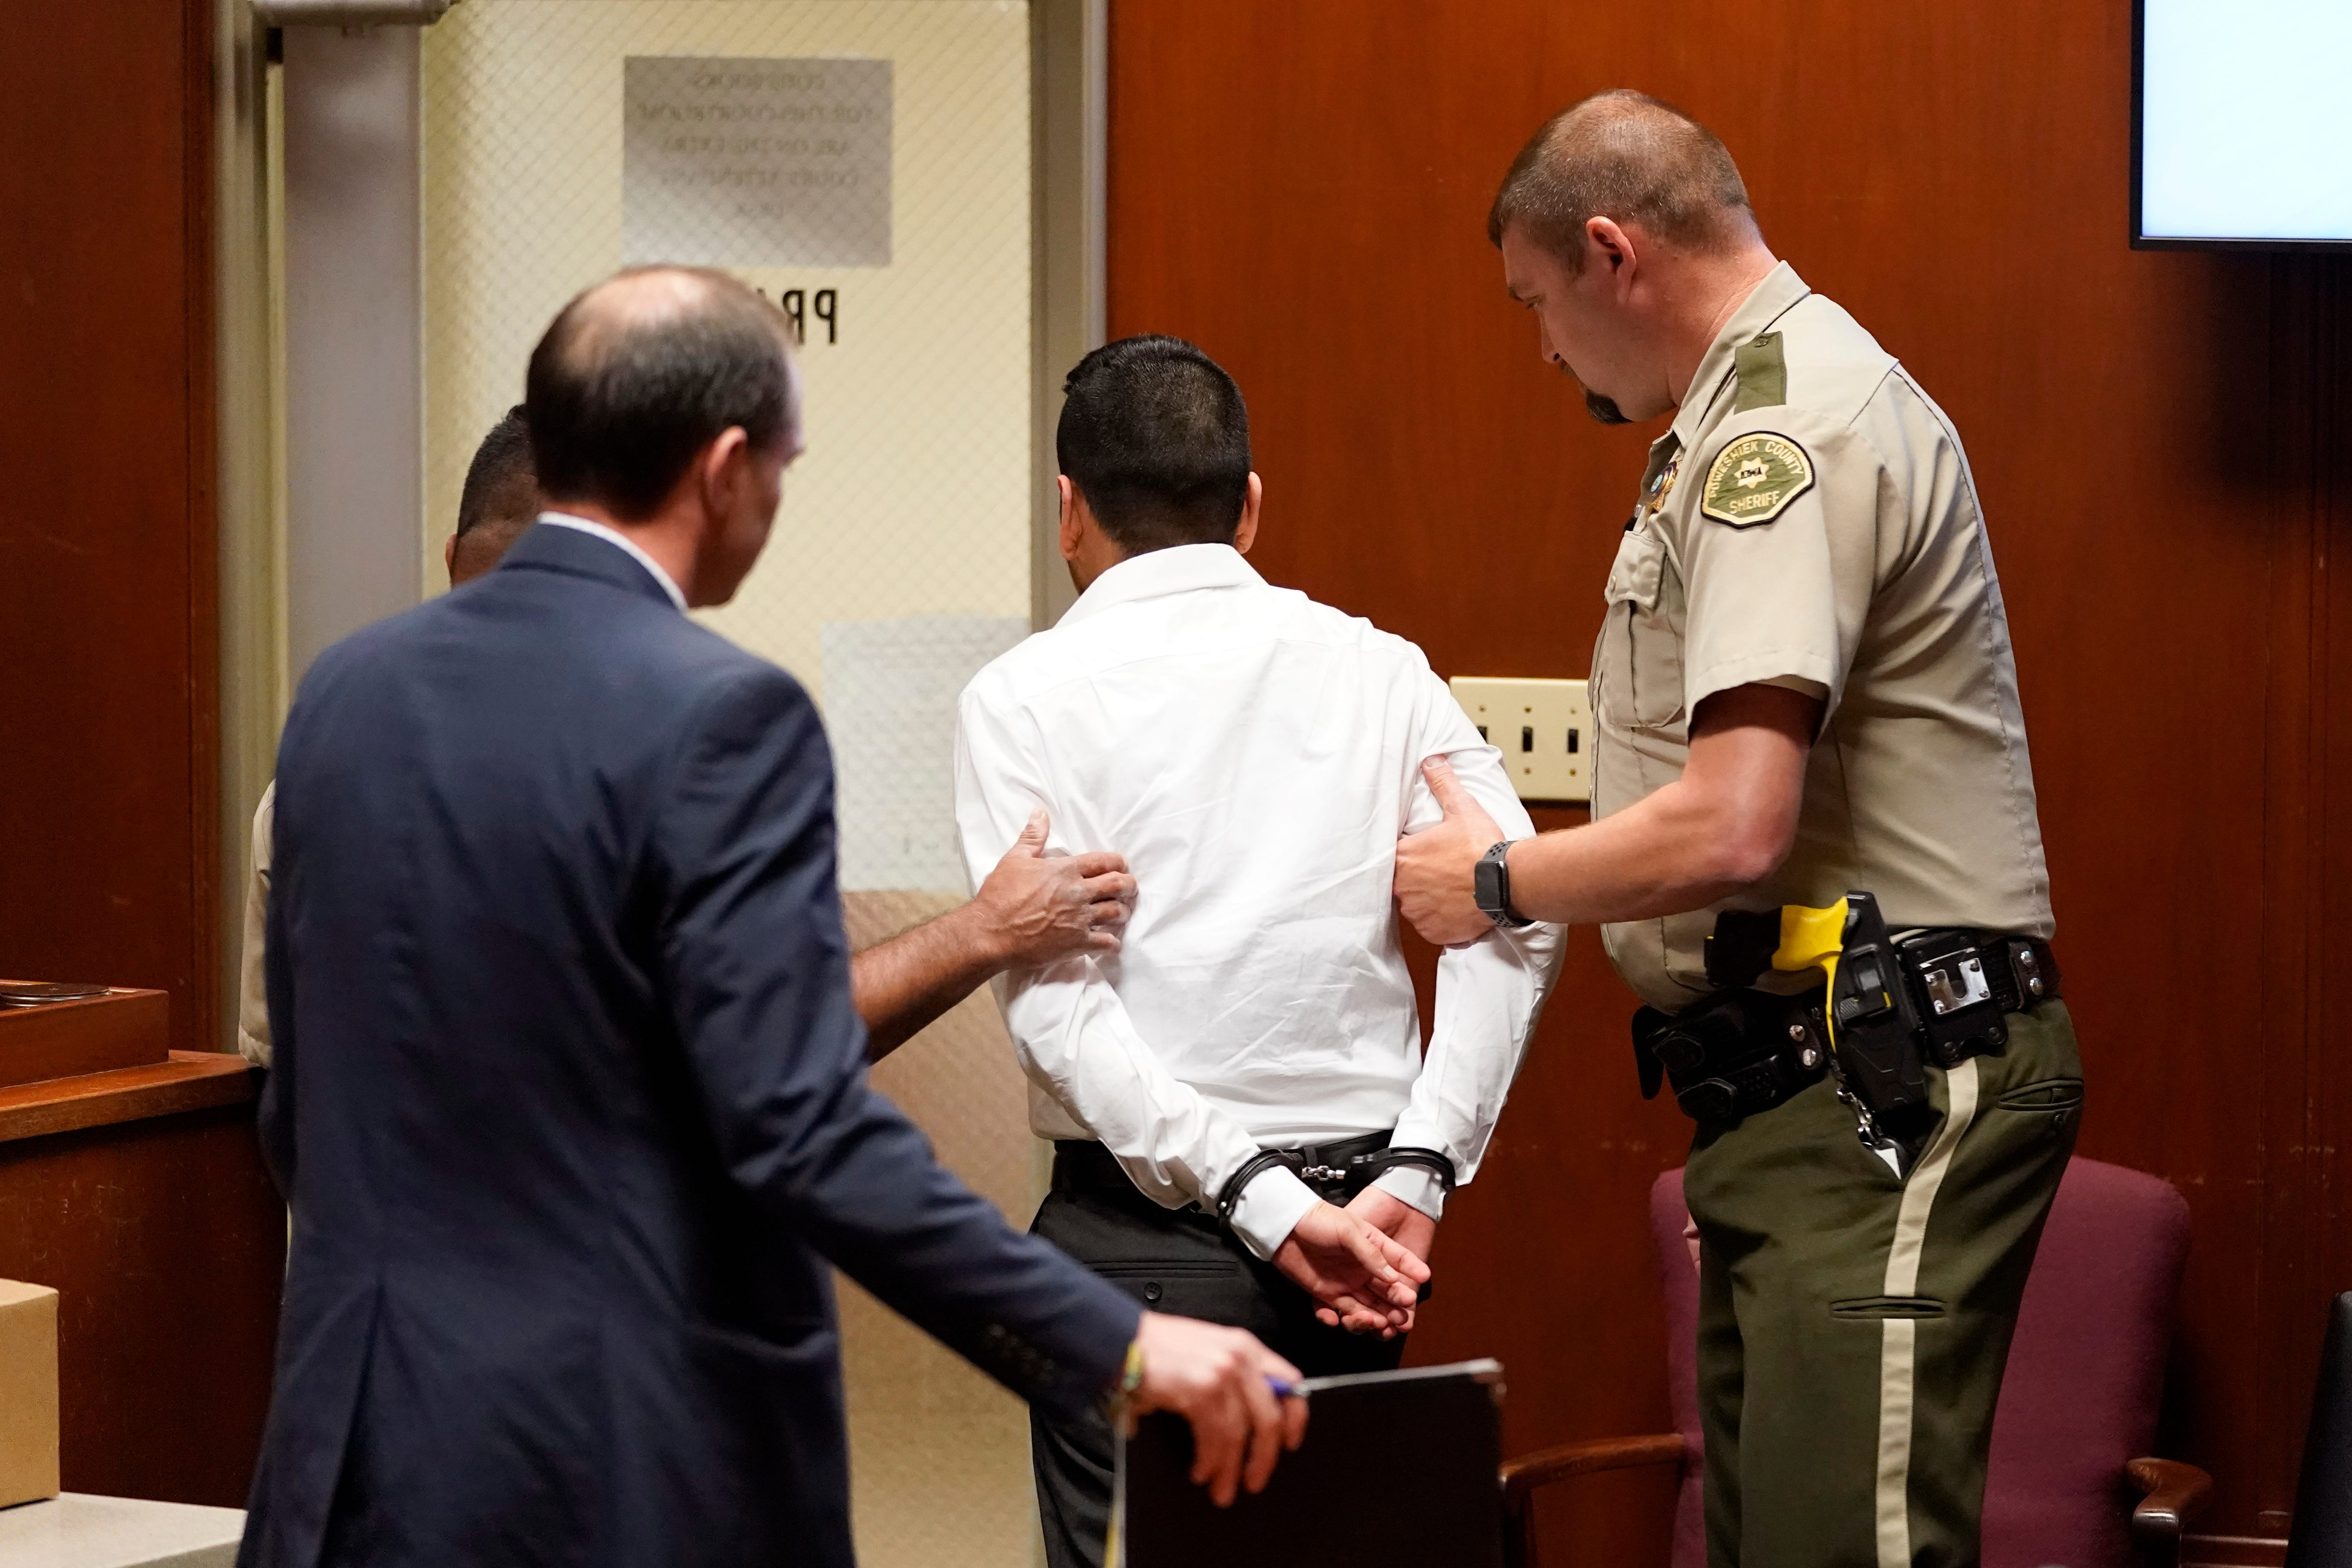 Cristhian Bahena Rivera is led out of court after a jury found him guilty of murdering Mollie Tibbetts.